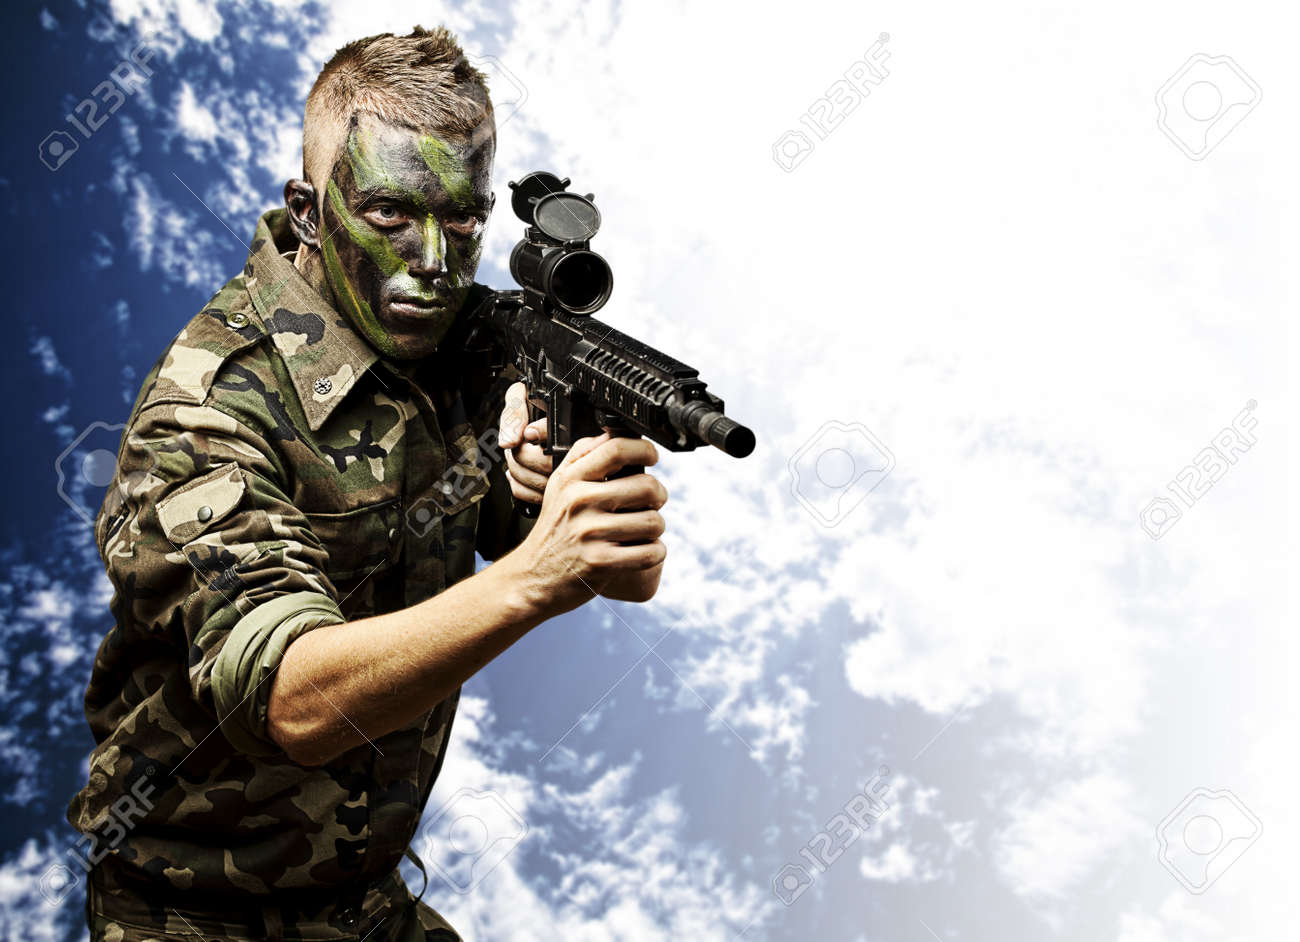 portrait of young soldier pointing with rifle against a blue sky background Stock Photo - 12656291